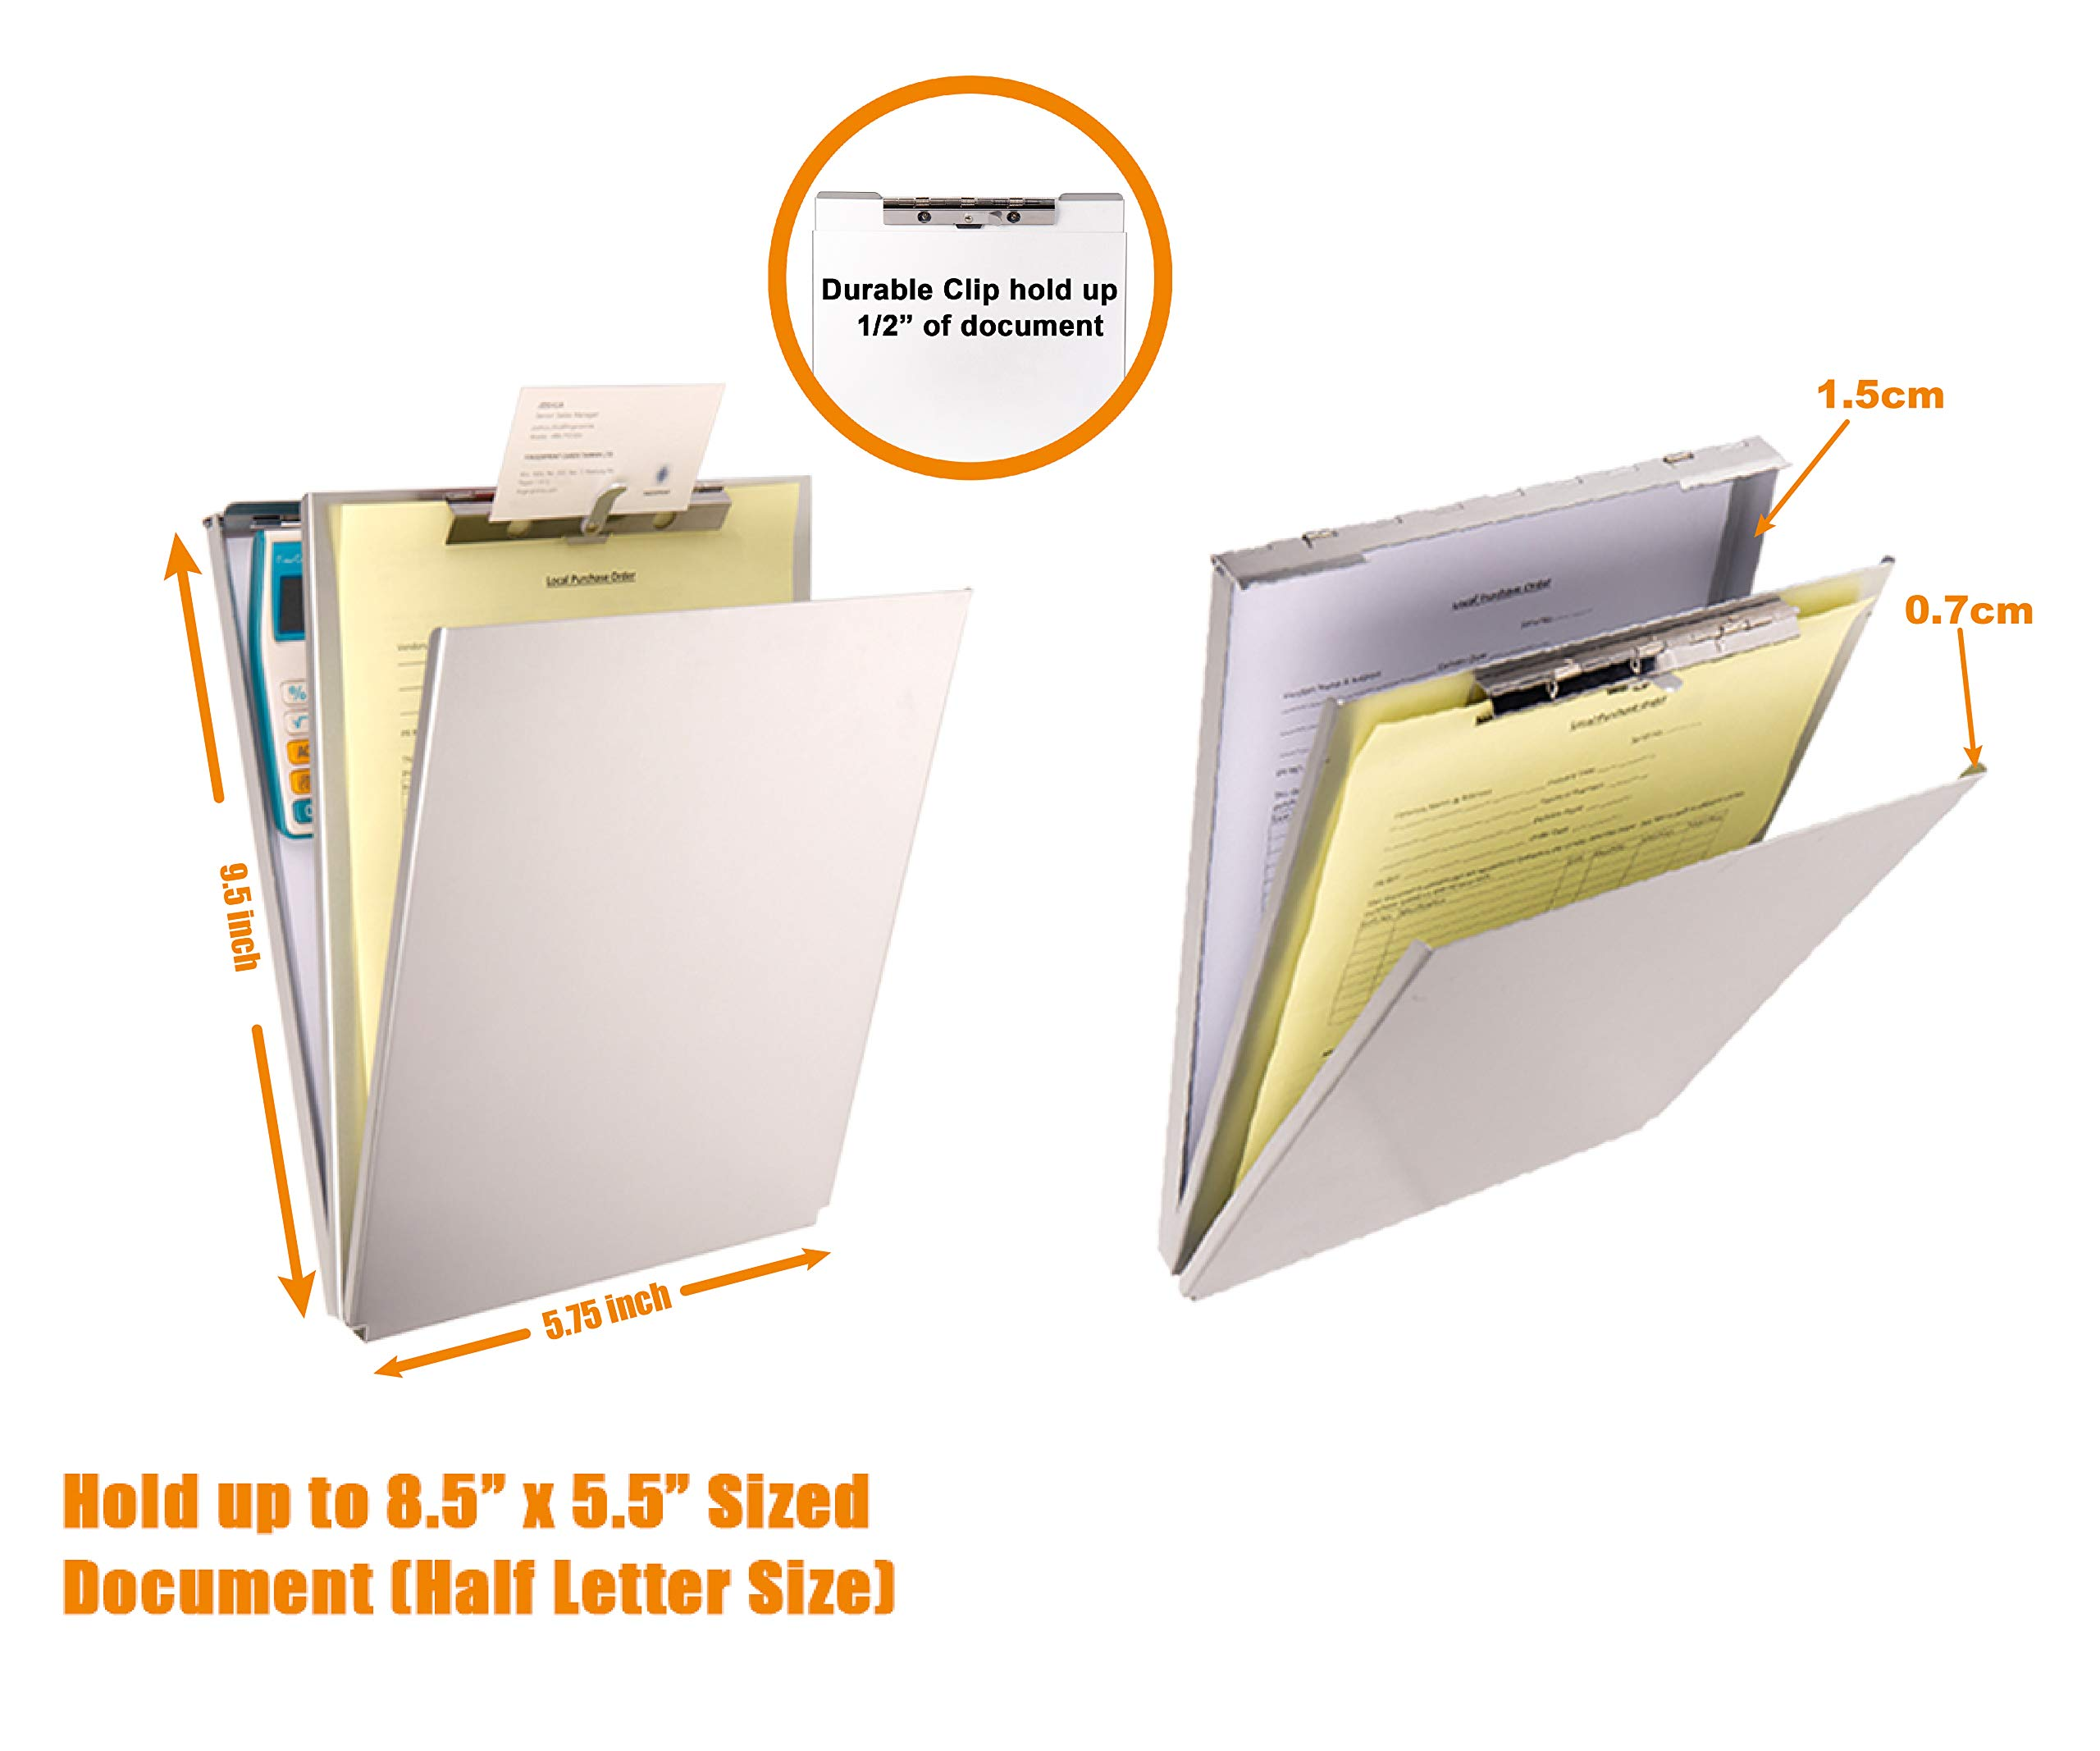 Summit Tools Dual Storage Aluminum Clipboard - Memo Size (9.5 x 5.75 Inches) Document Holder with Self Locking Latch, Form Clip, 2 Storage Compartment [2- Pack] by Summit Tools (Image #6)